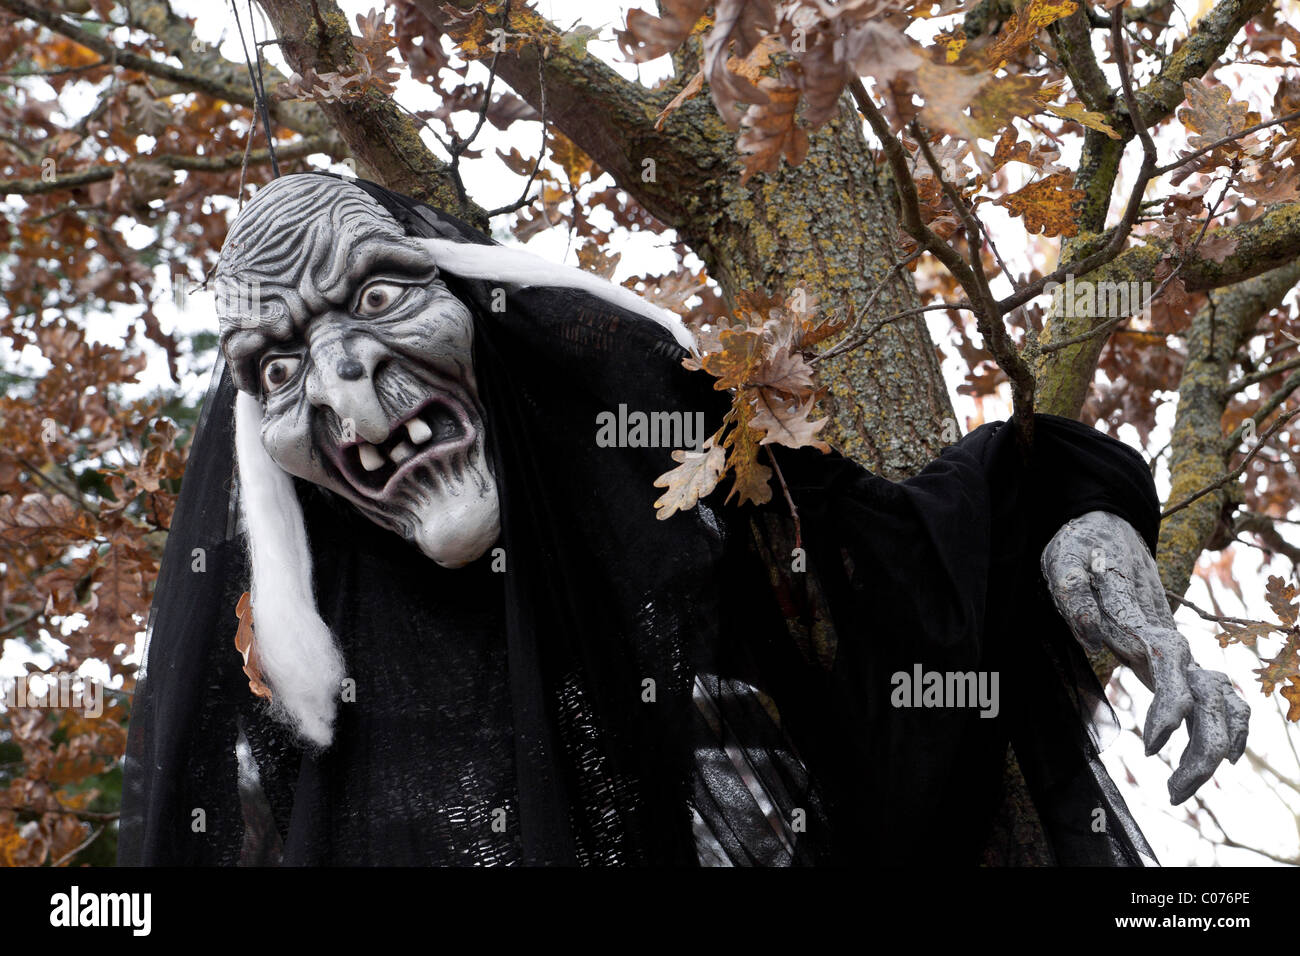 Witch figure, hanging from a tree, creepy, Walpurgis Night - Stock Image